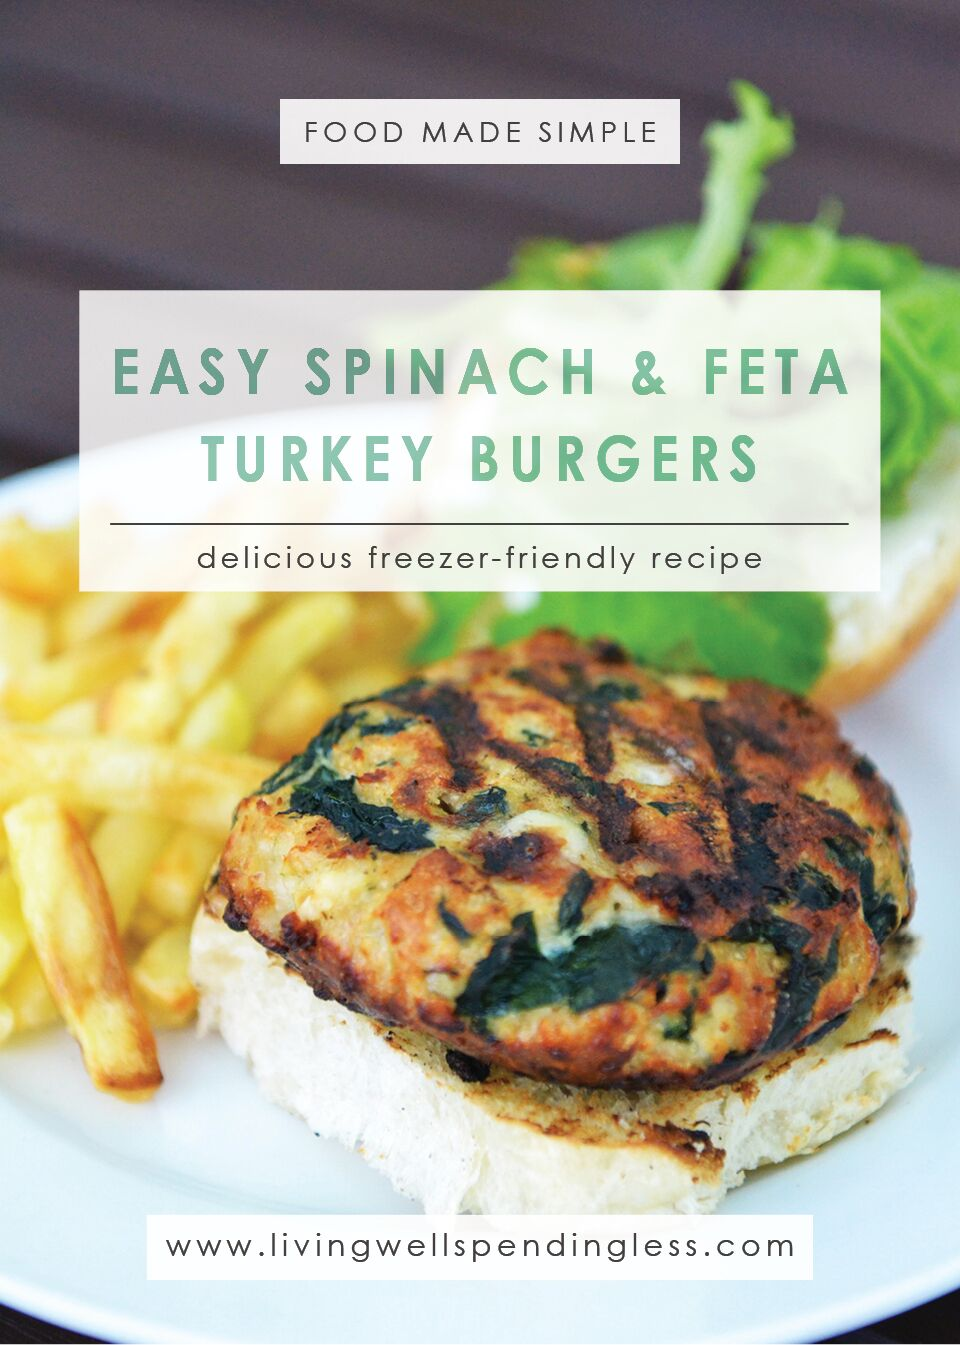 Easy Spinach & Feta Turkey Burgers: A Delicious, Freezer-Friendly Recipe